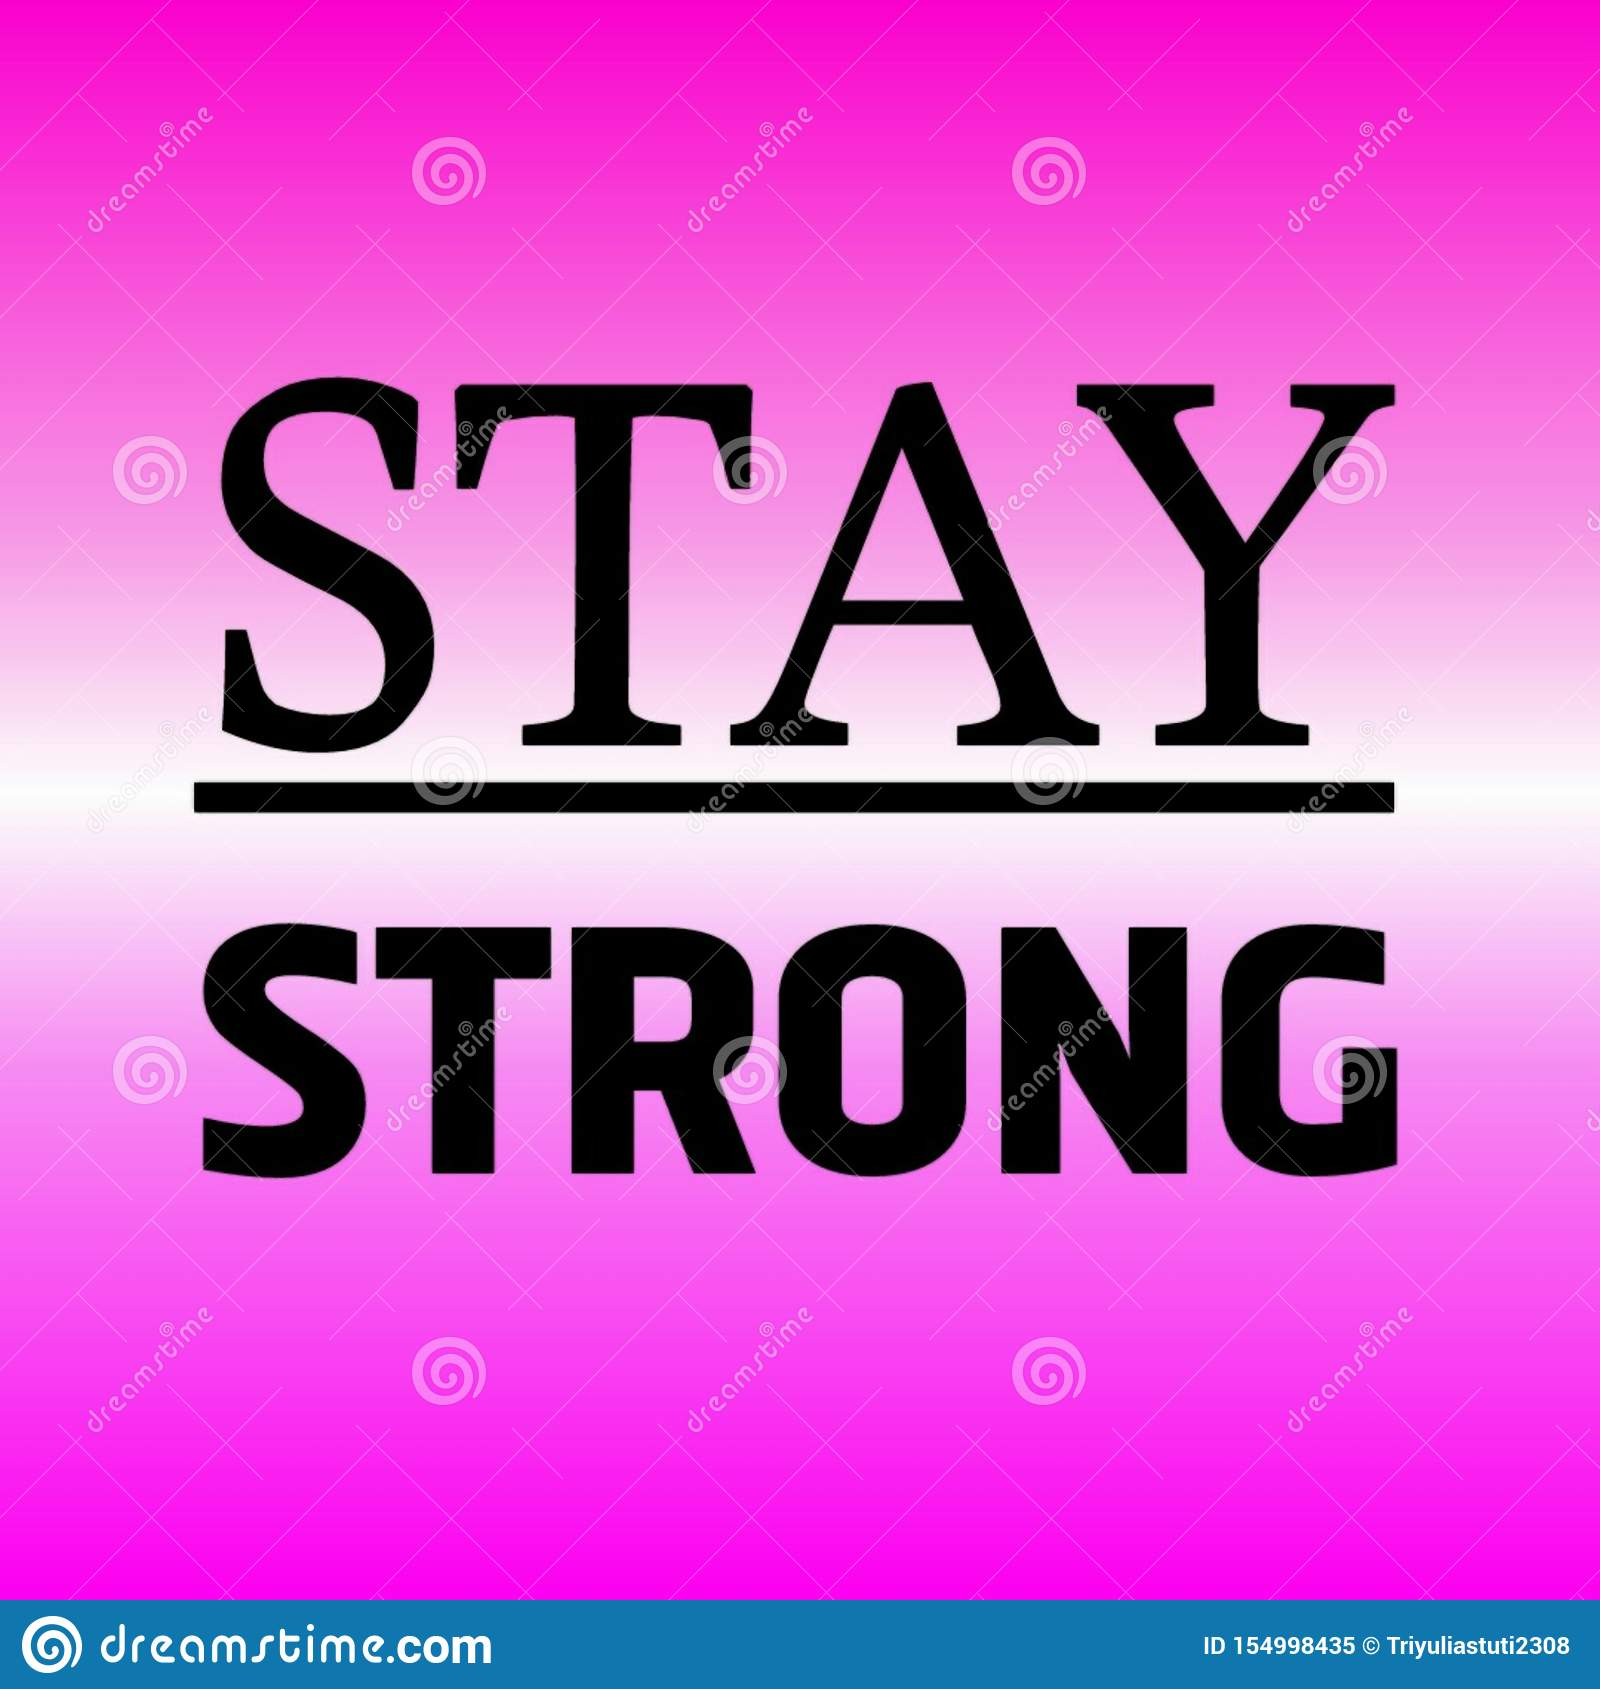 Stay strong typography for poster